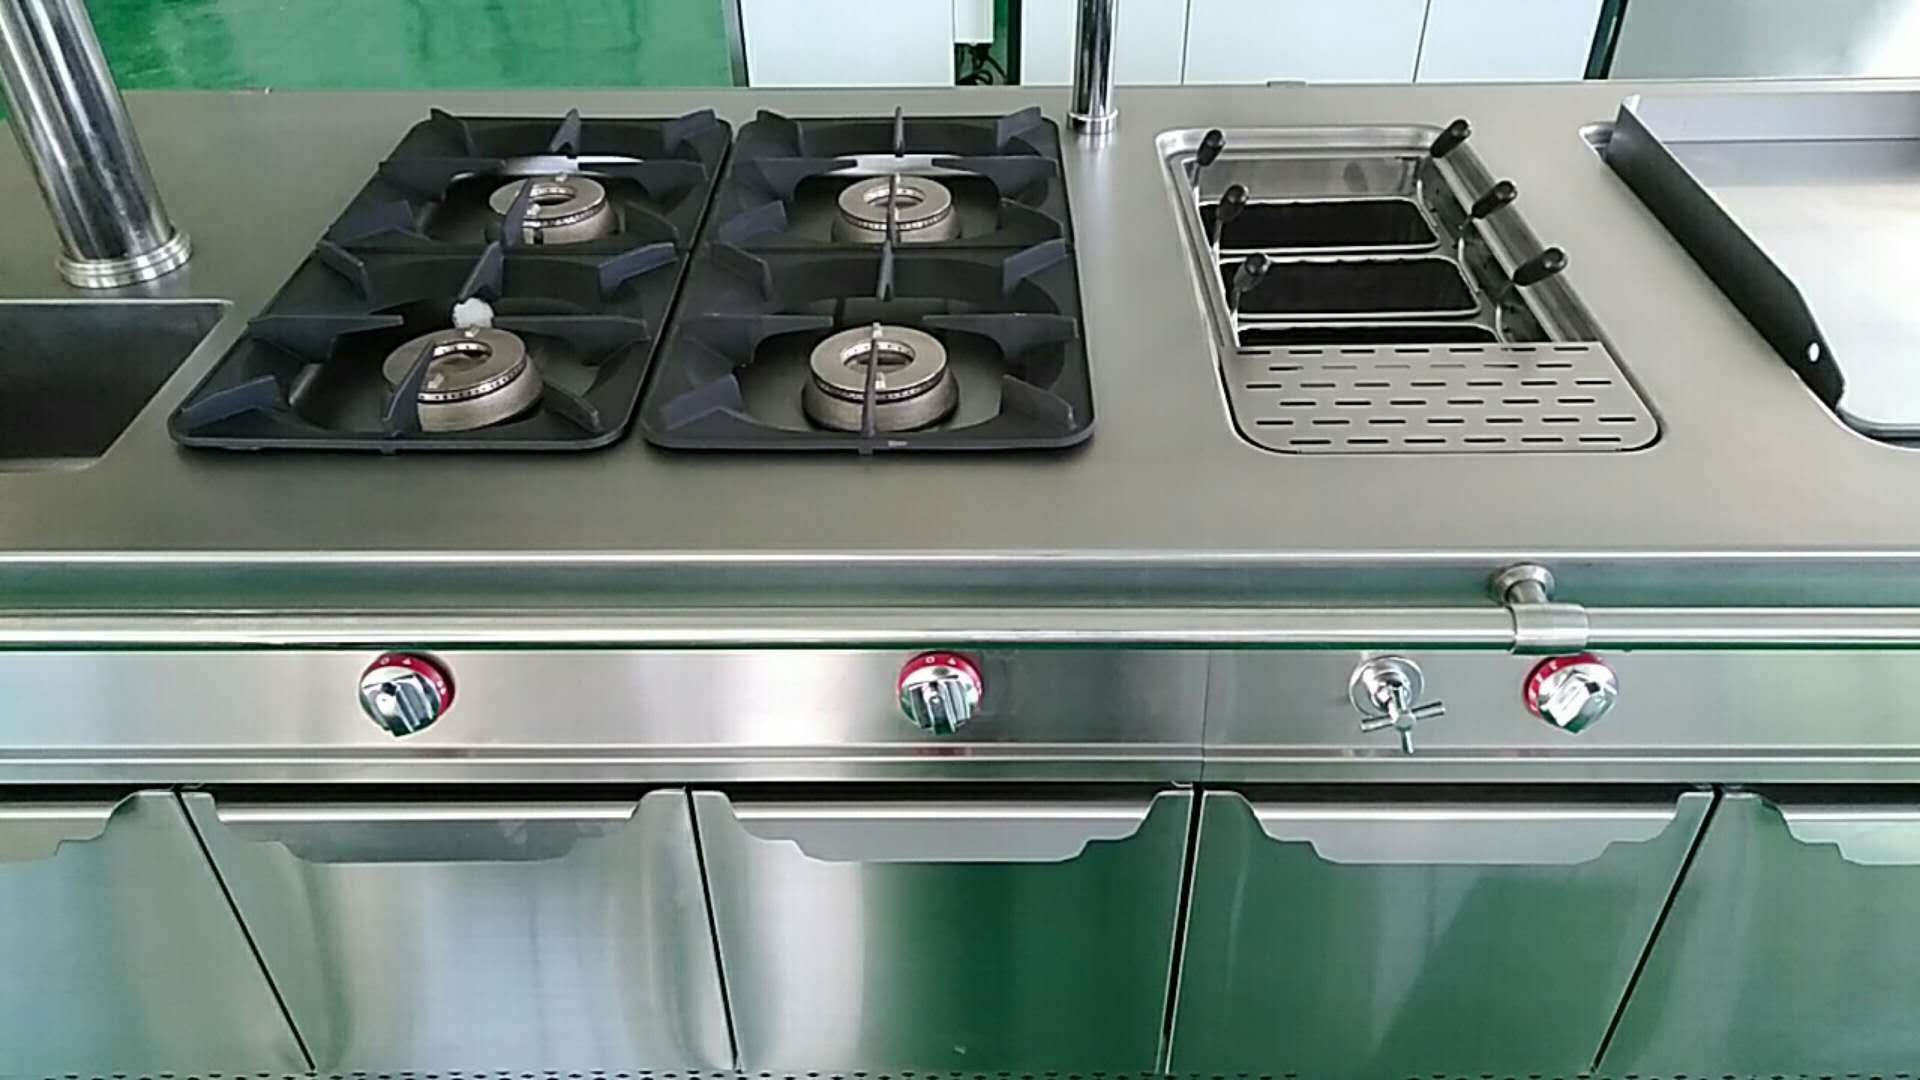 Gas Range With 4 Burner Oven Industrial Cooking